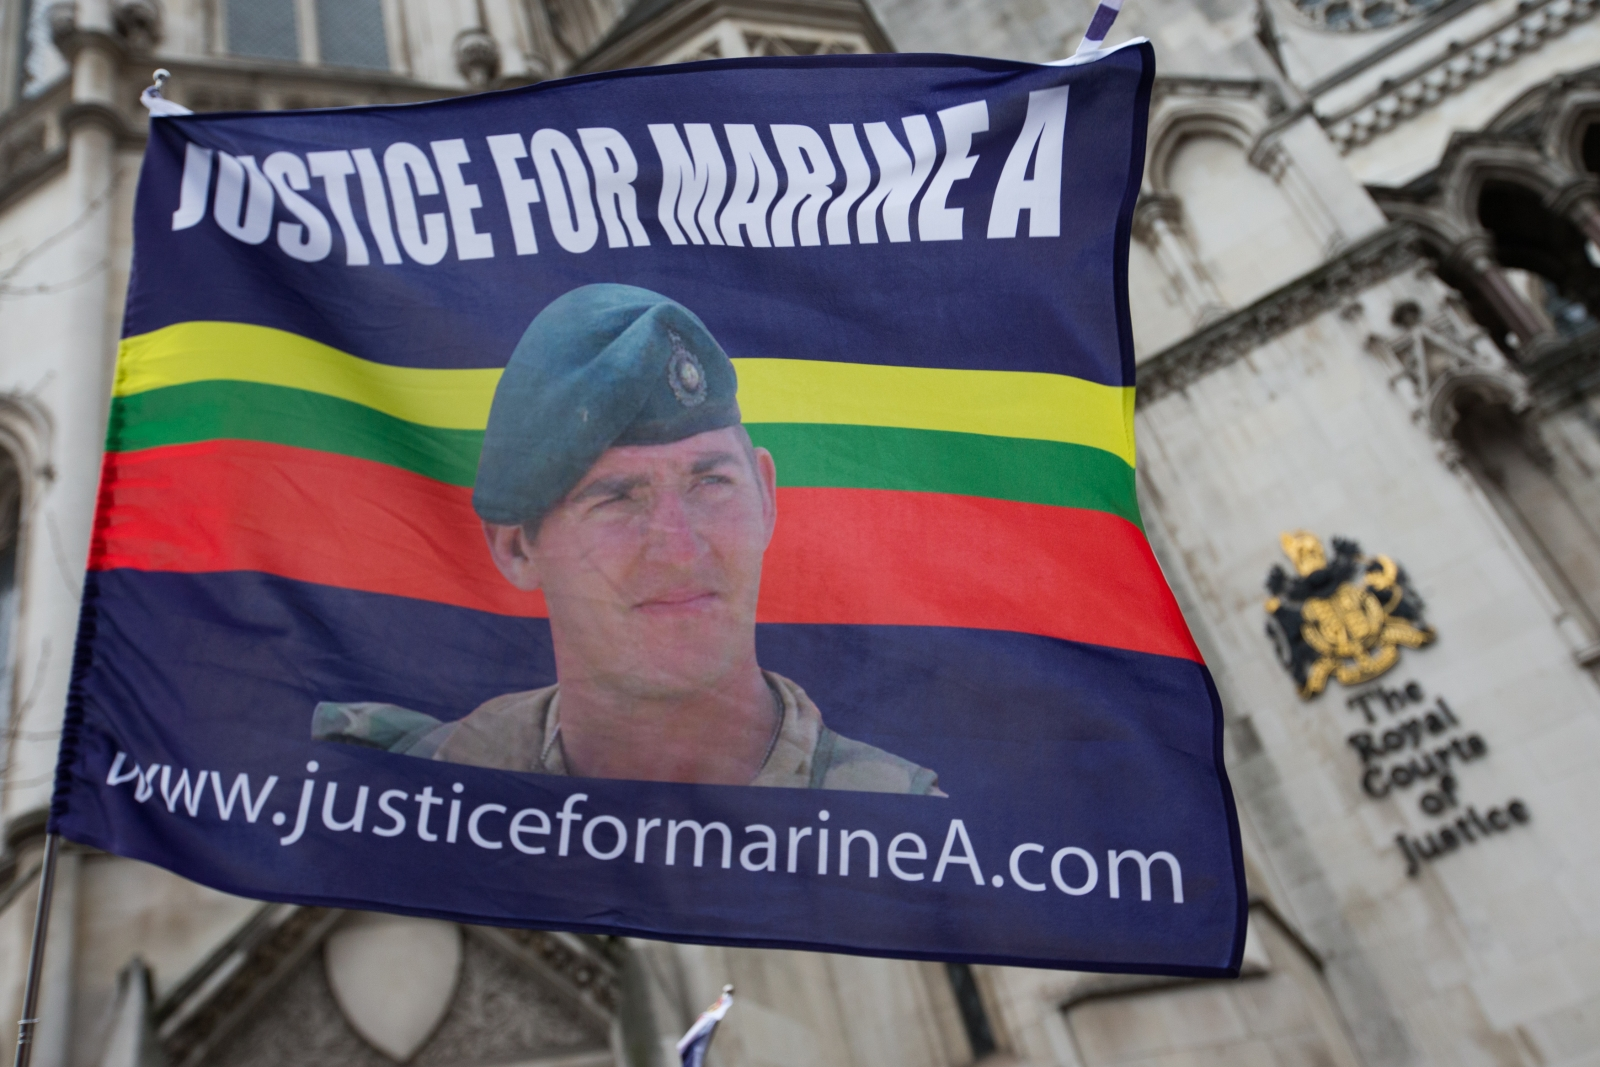 Brighton marine's murder conviction reduced to manslaughter